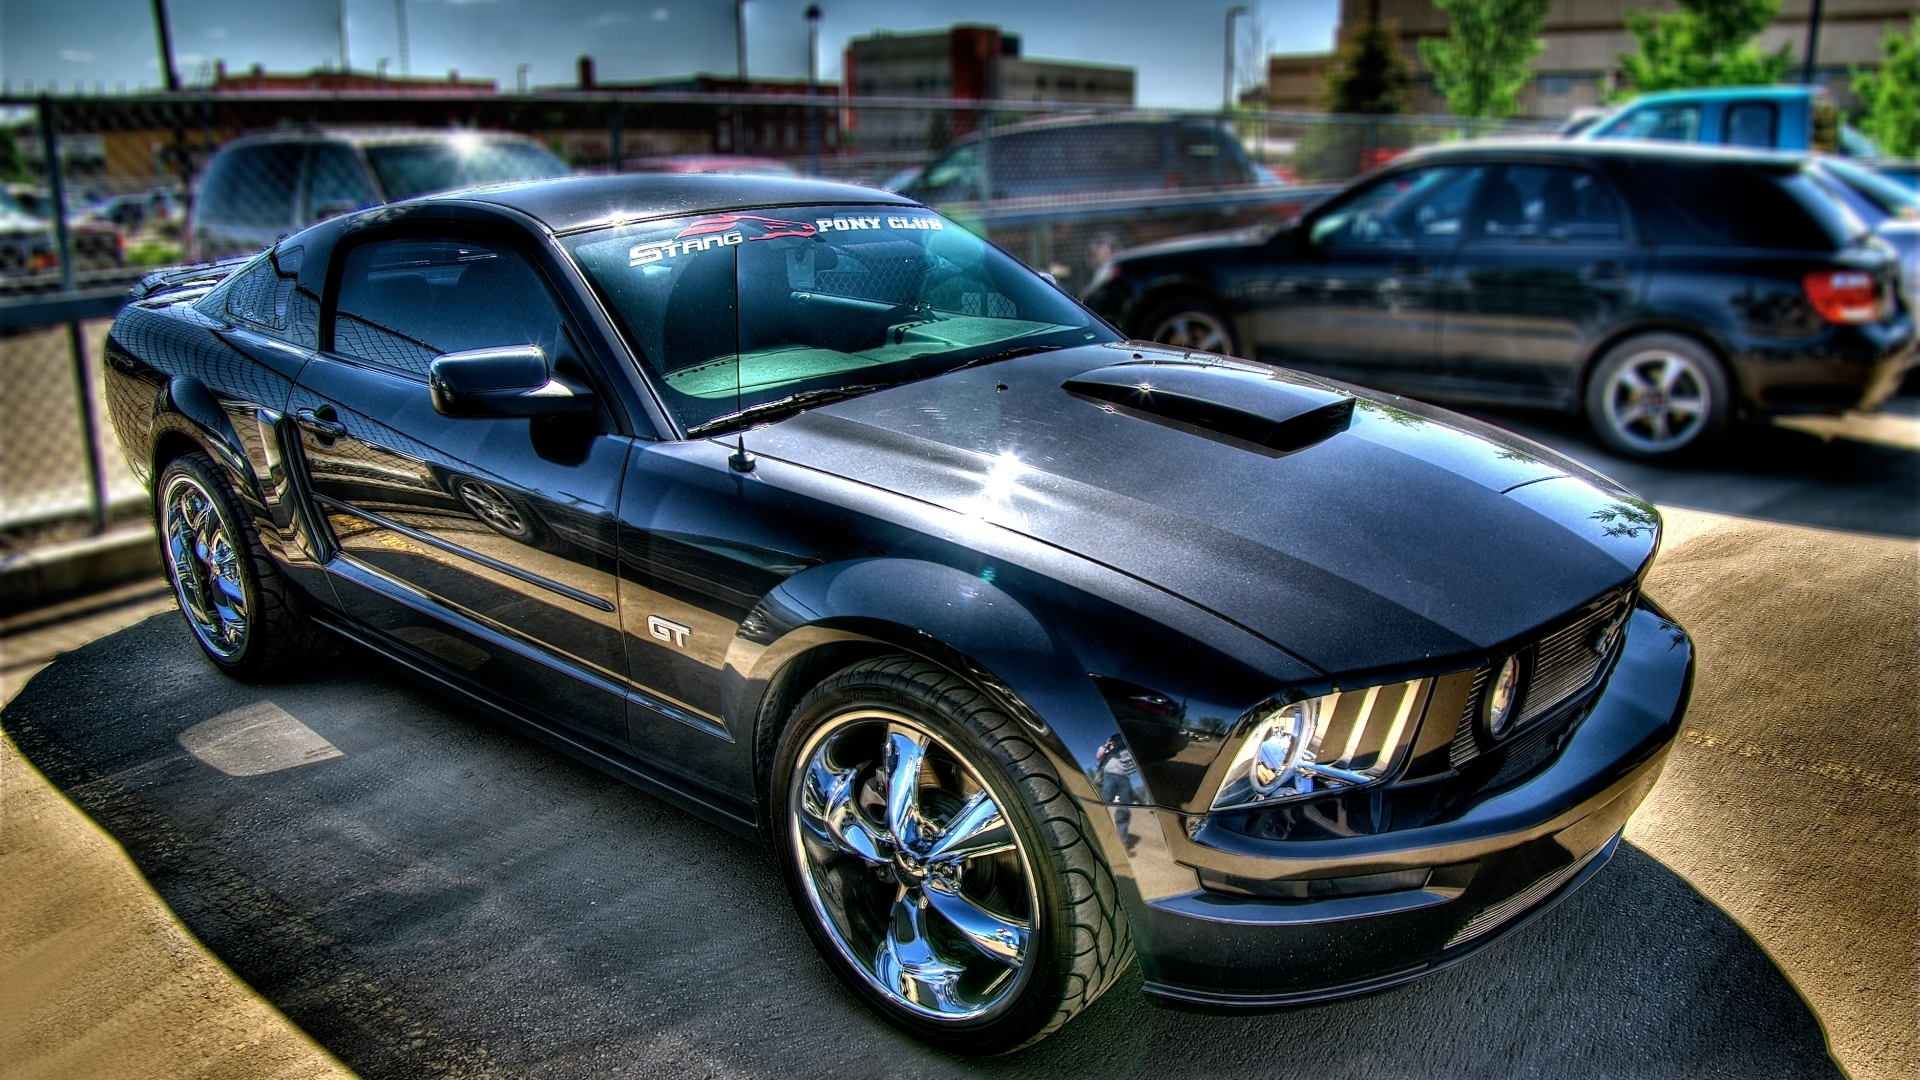 mustang gt500 shelby avto tuning cars ford mustang wallpapers 1920x1080